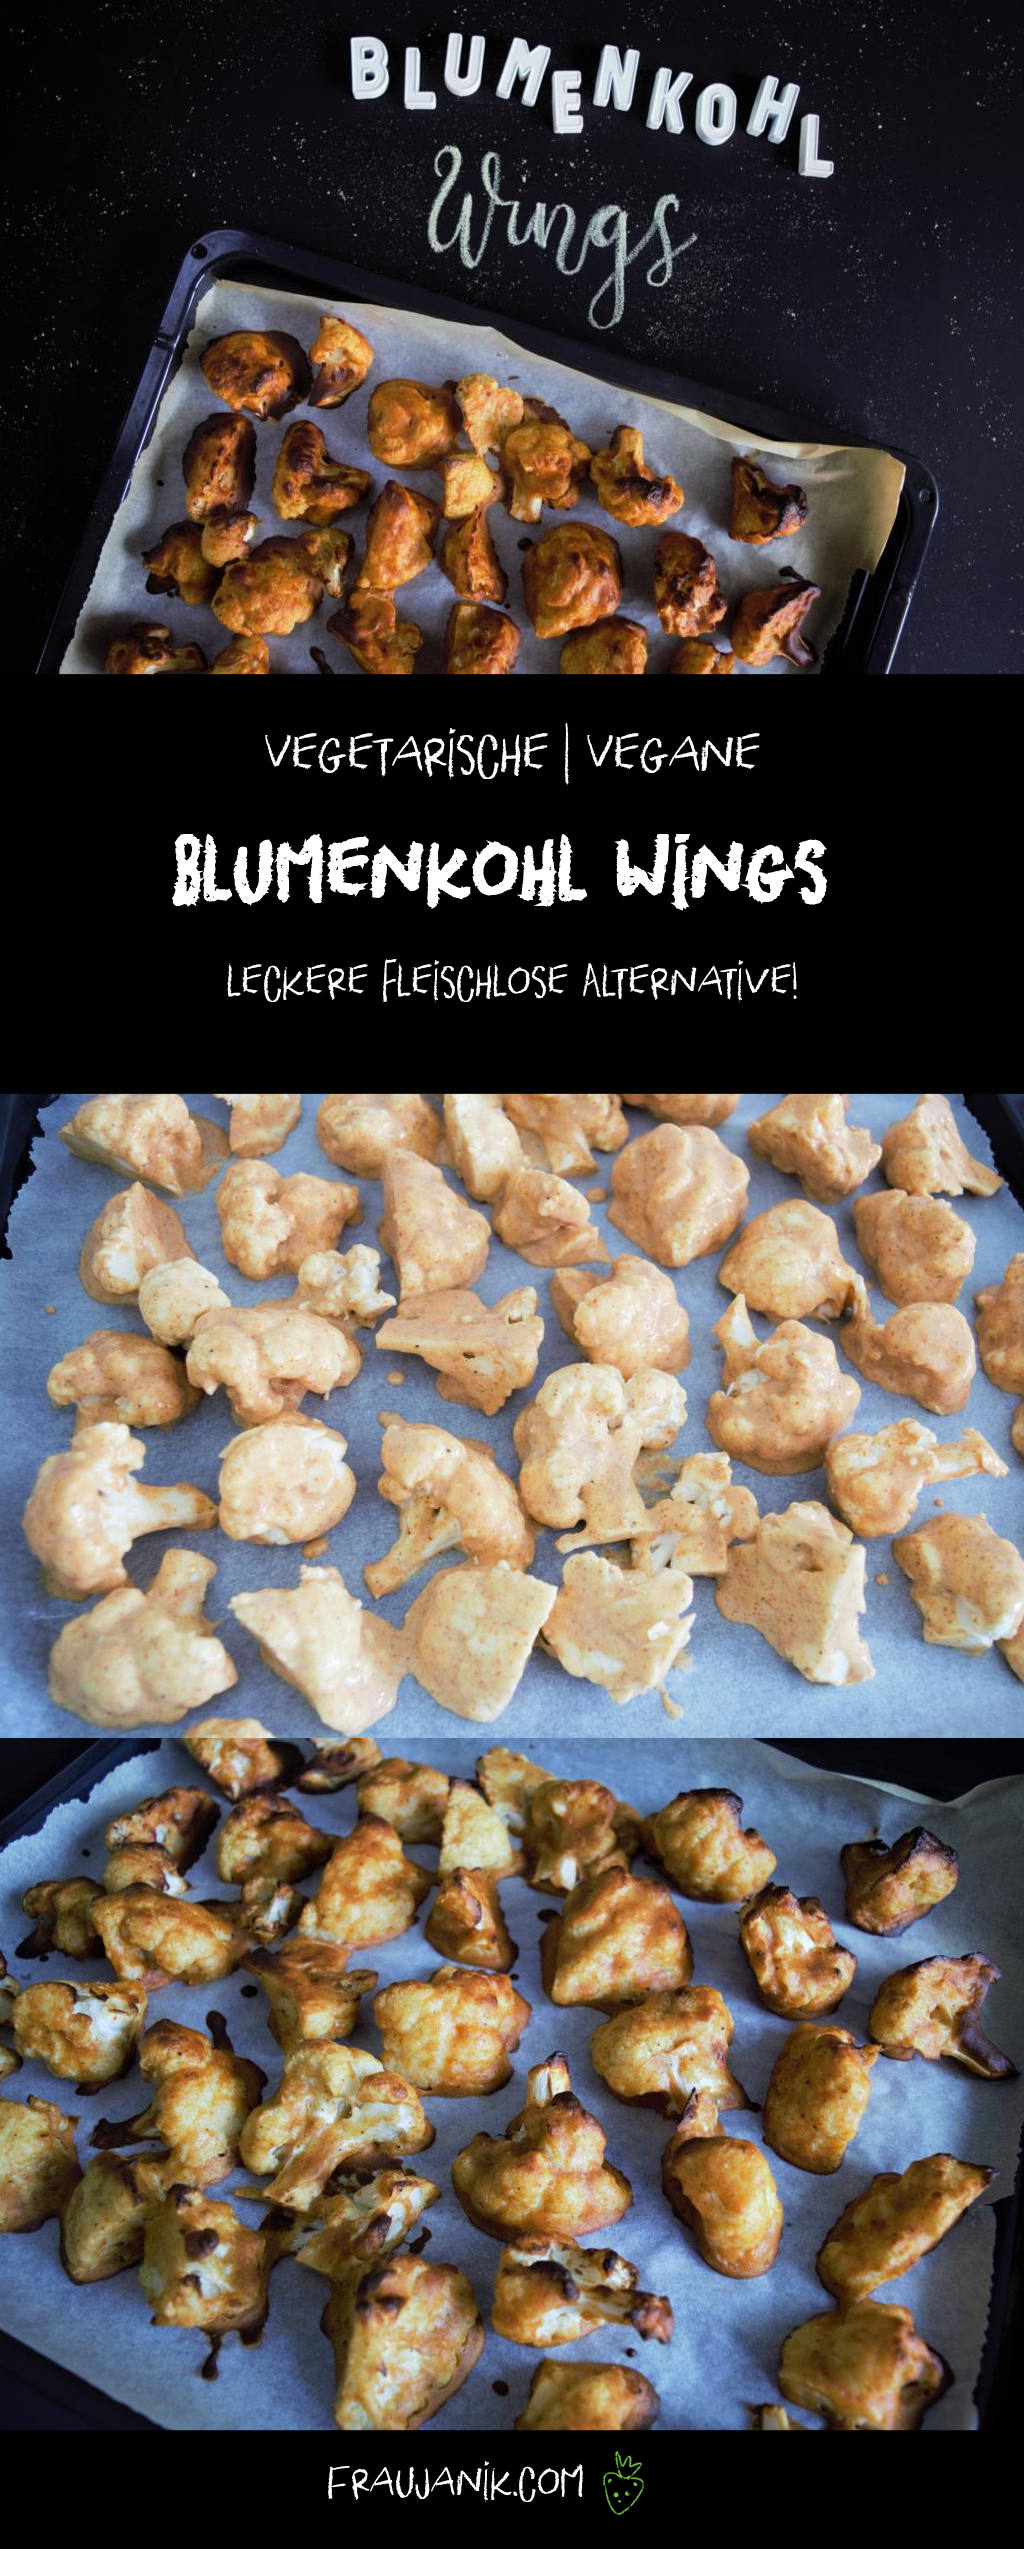 Blumenkohl Wings, vegan